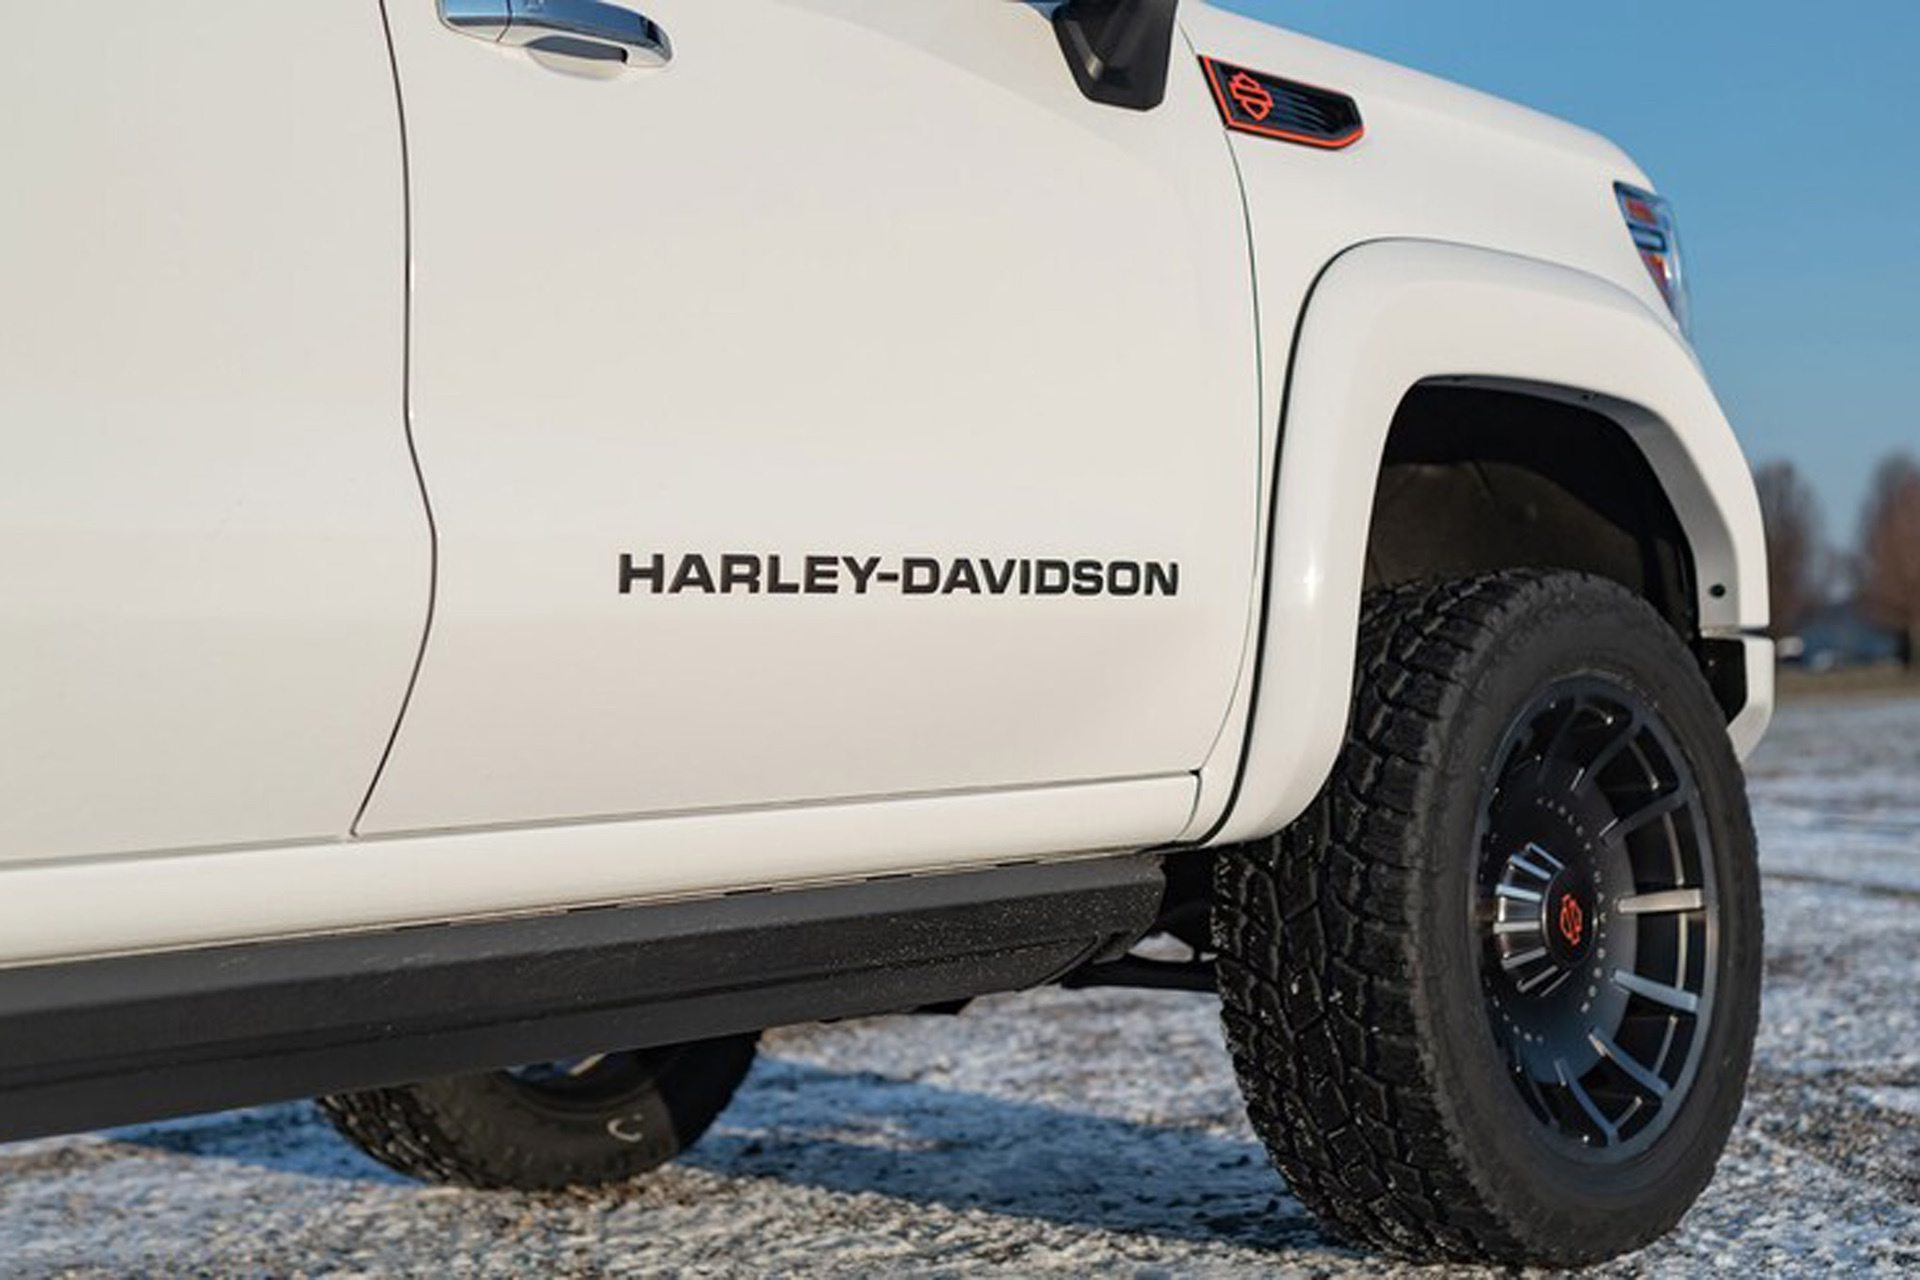 2020-GMC-Sierra-1500-Harley-Davidson-Edition-Tuscany-Automotive_0011